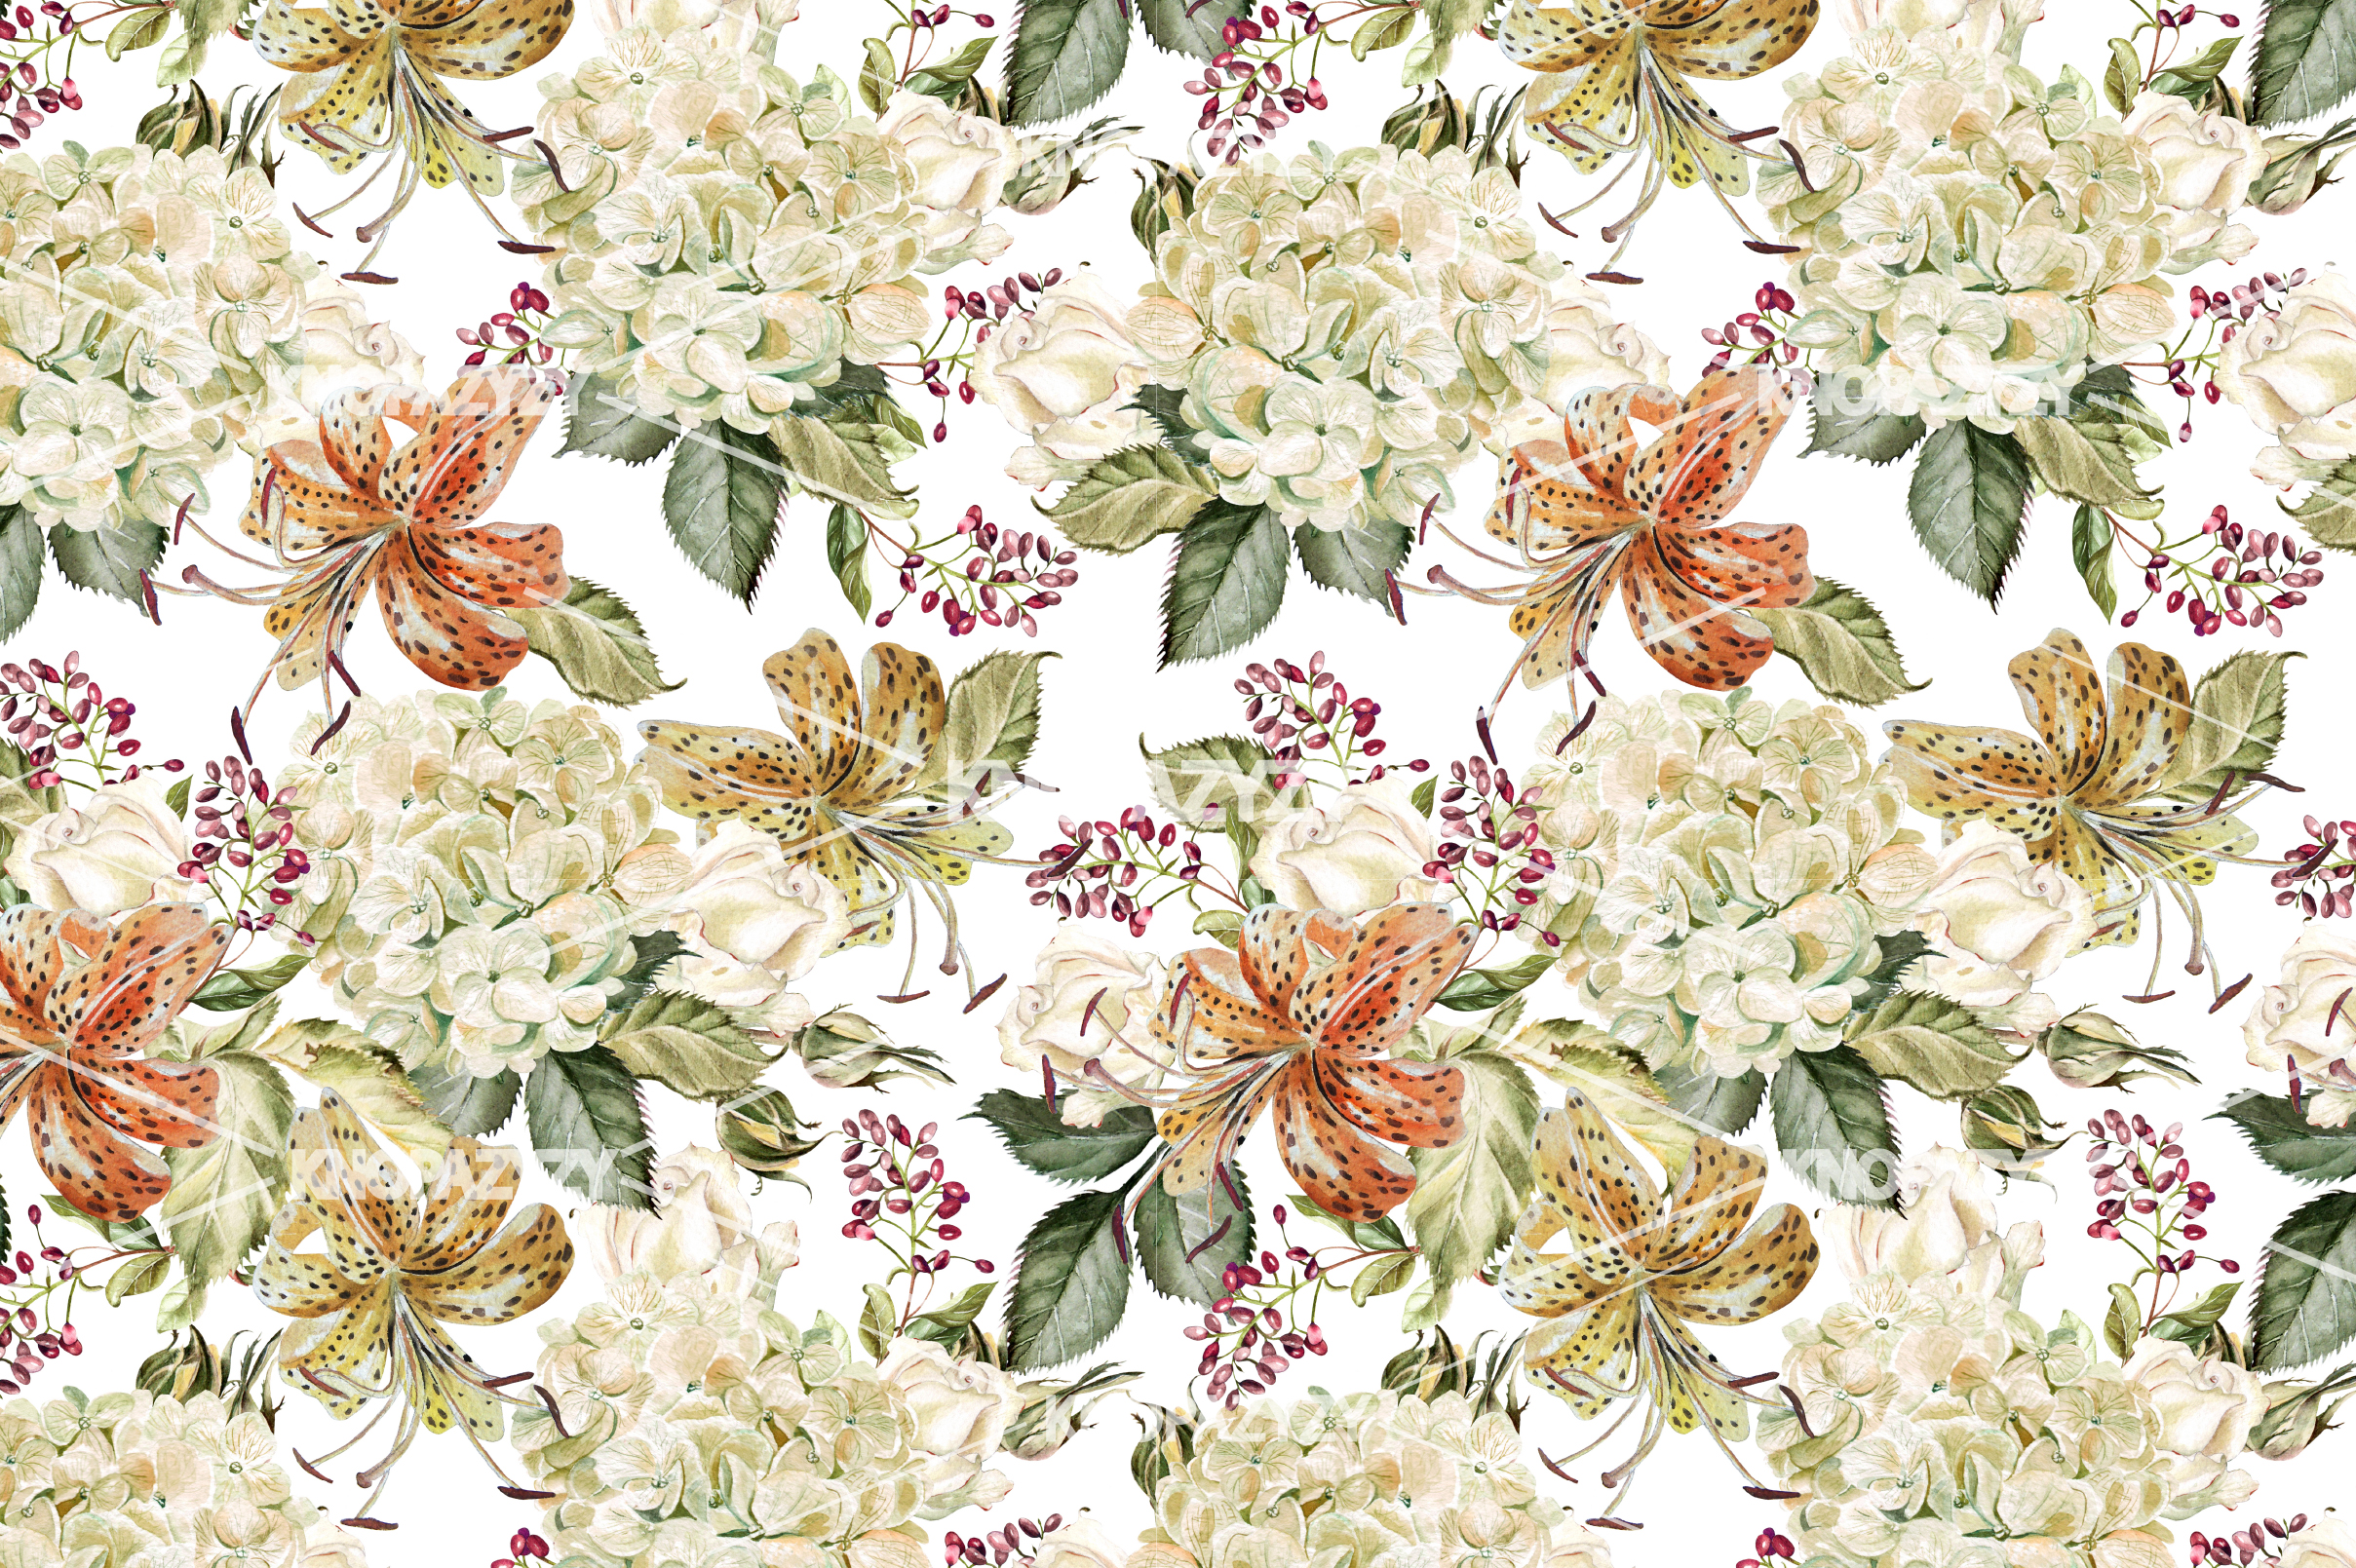 14 Hand drawn watercolor patterns example image 12